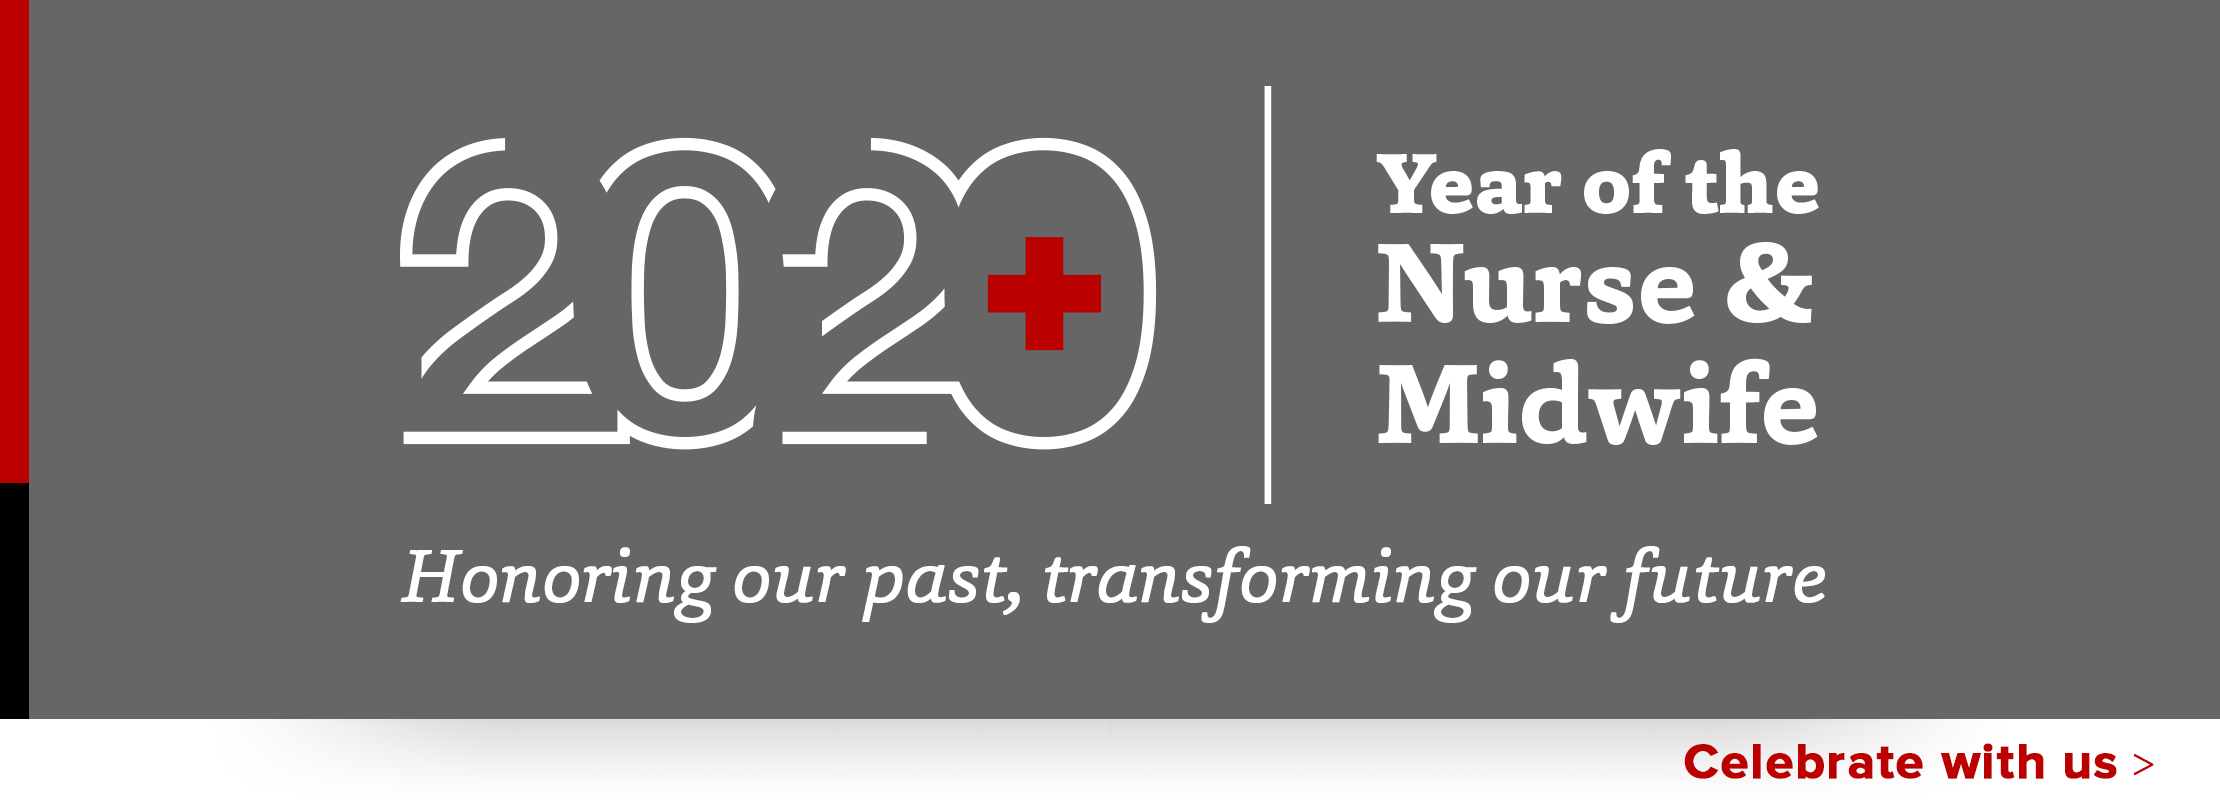 2020 Year of the Nurse and Midwife | Honoring our past, transforming our future | Celebrate with us